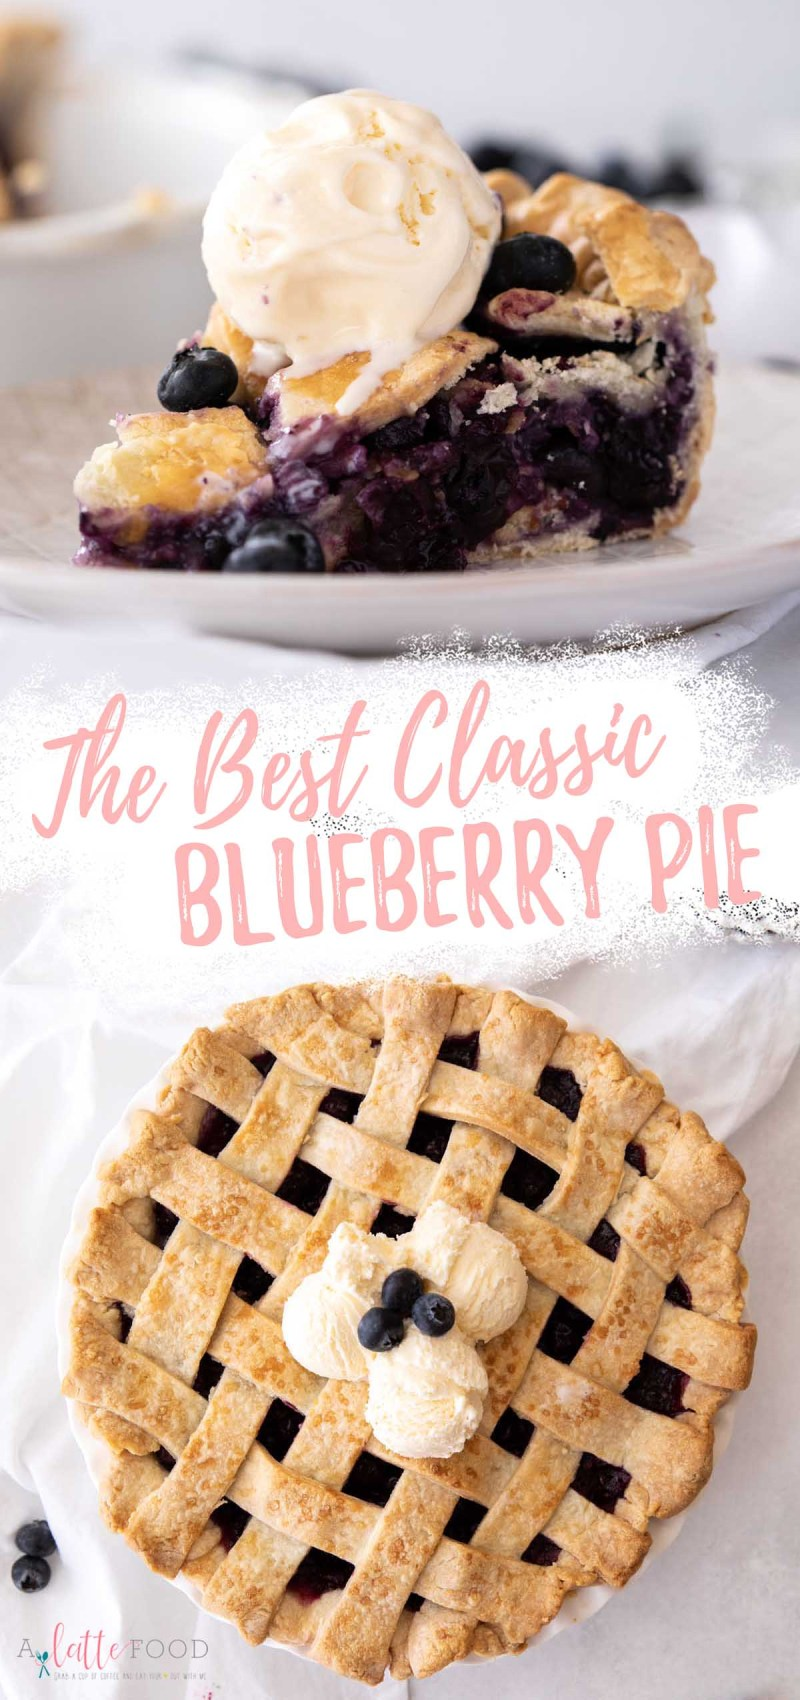 lattice topped old fashioned blueberry pie recipe collage